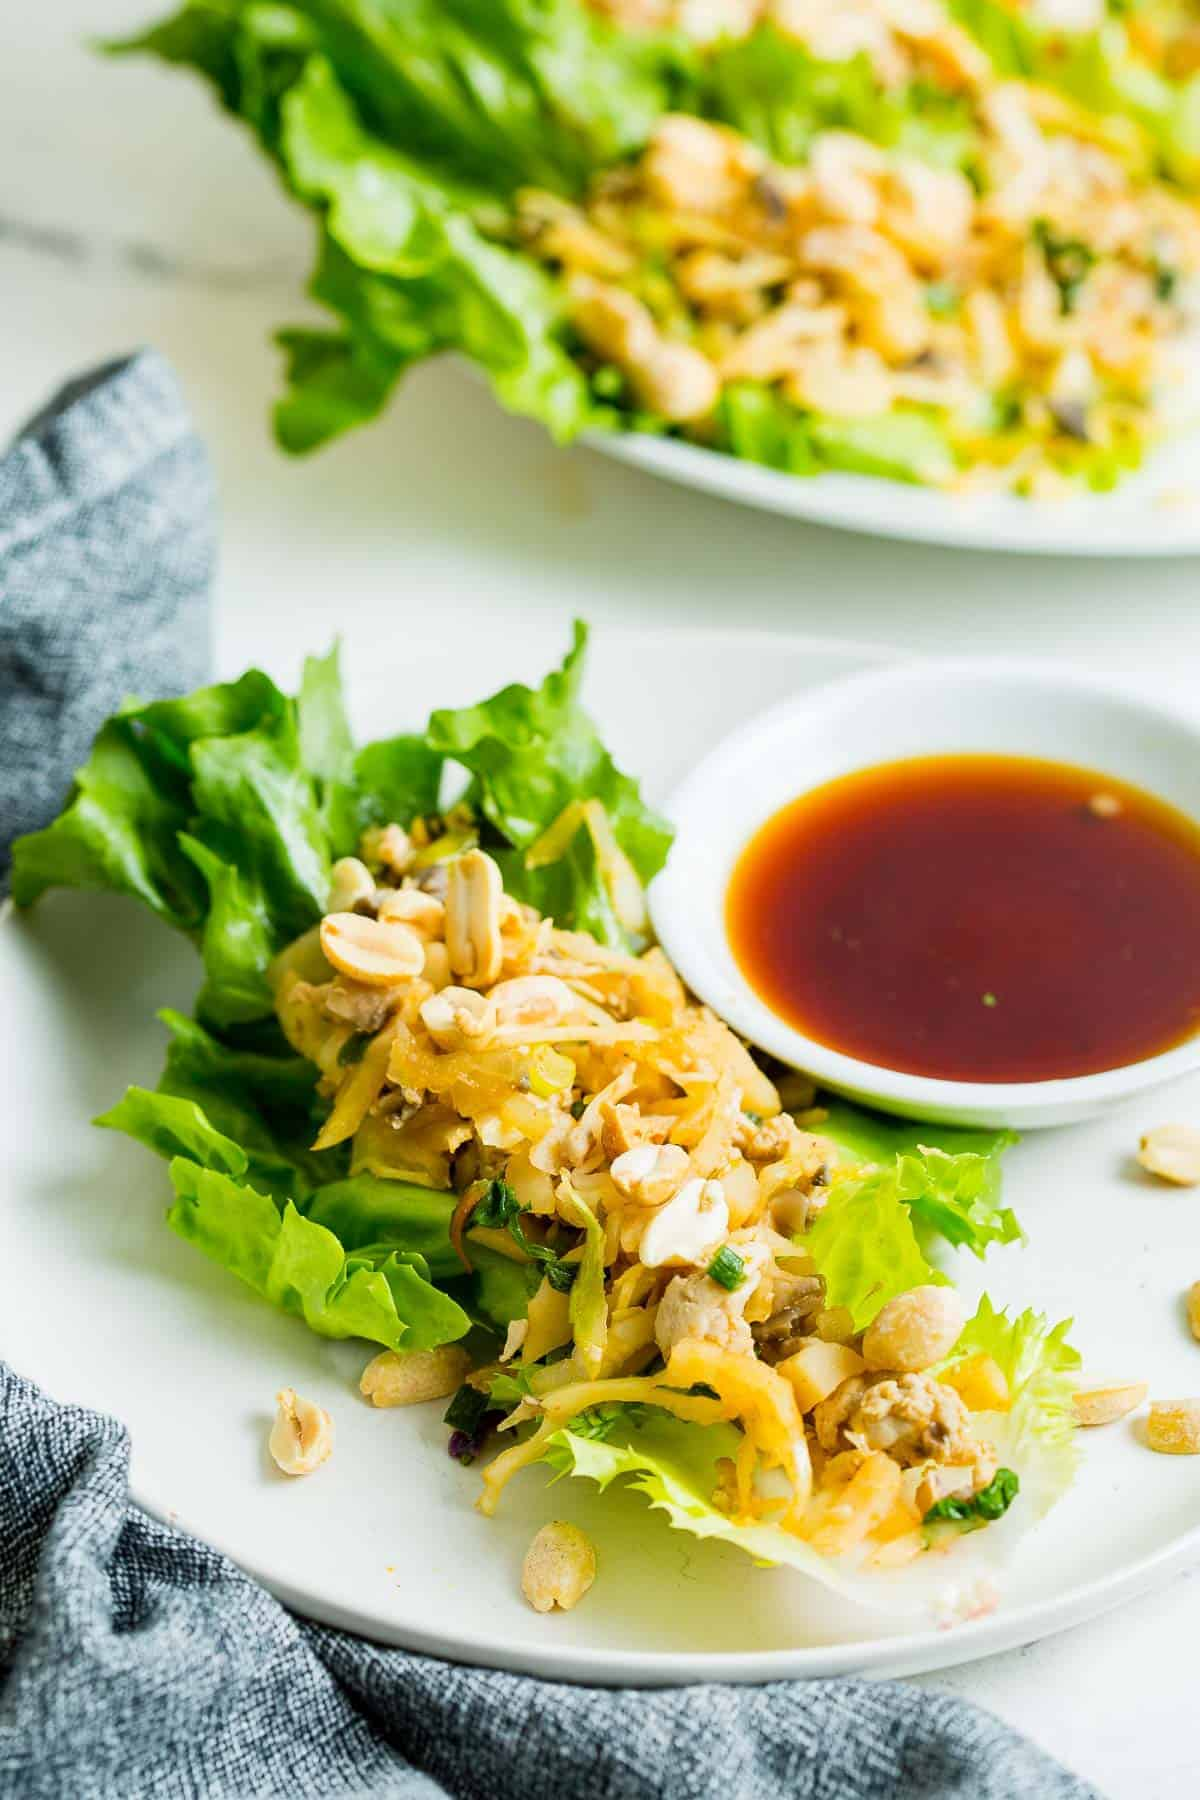 Composed lettuce wraps on a plate.